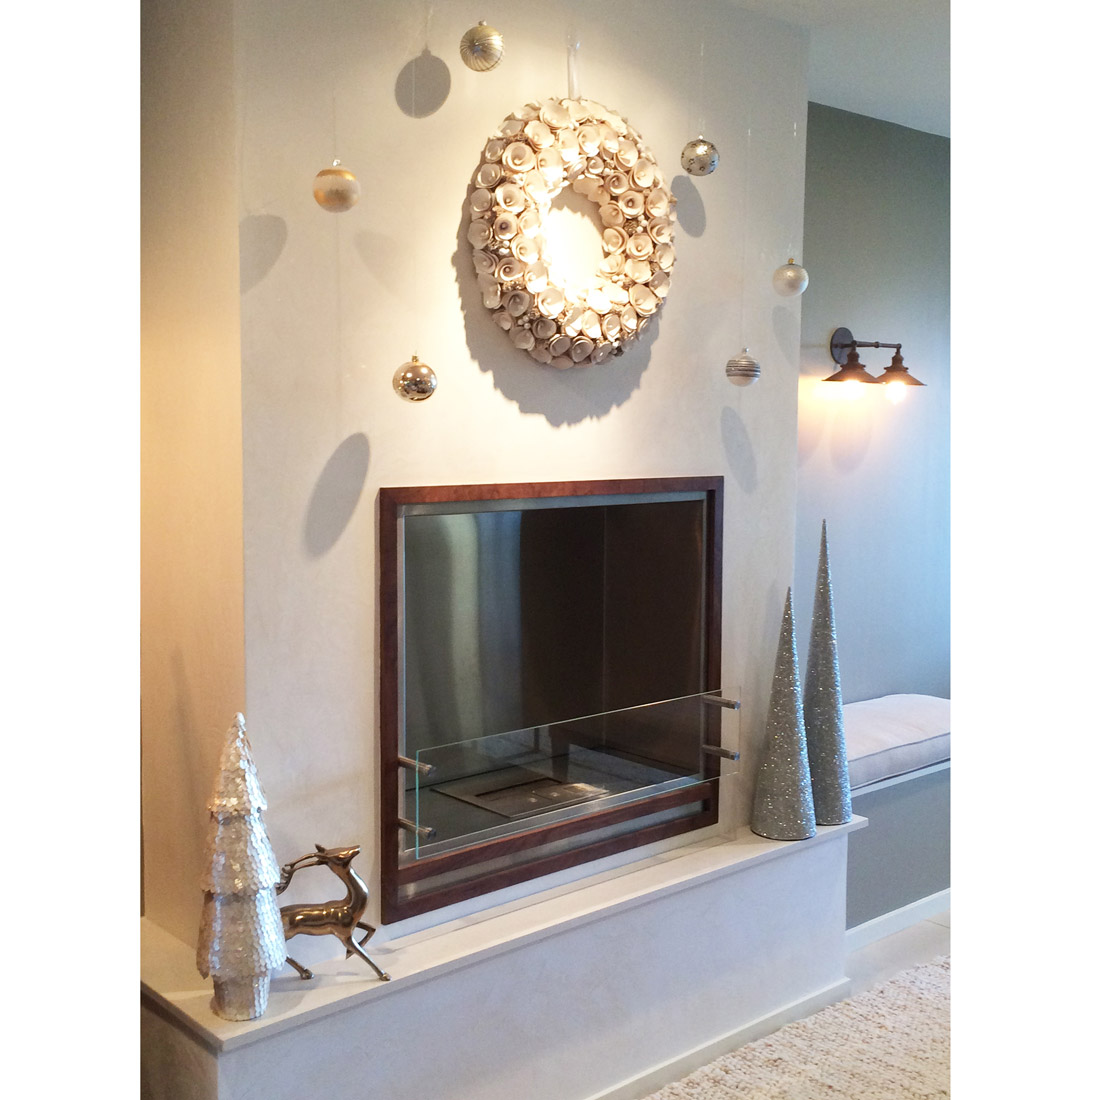 holiday wreath and decor adorn a venetian plaster white modern fireplace design by sara bates interior design